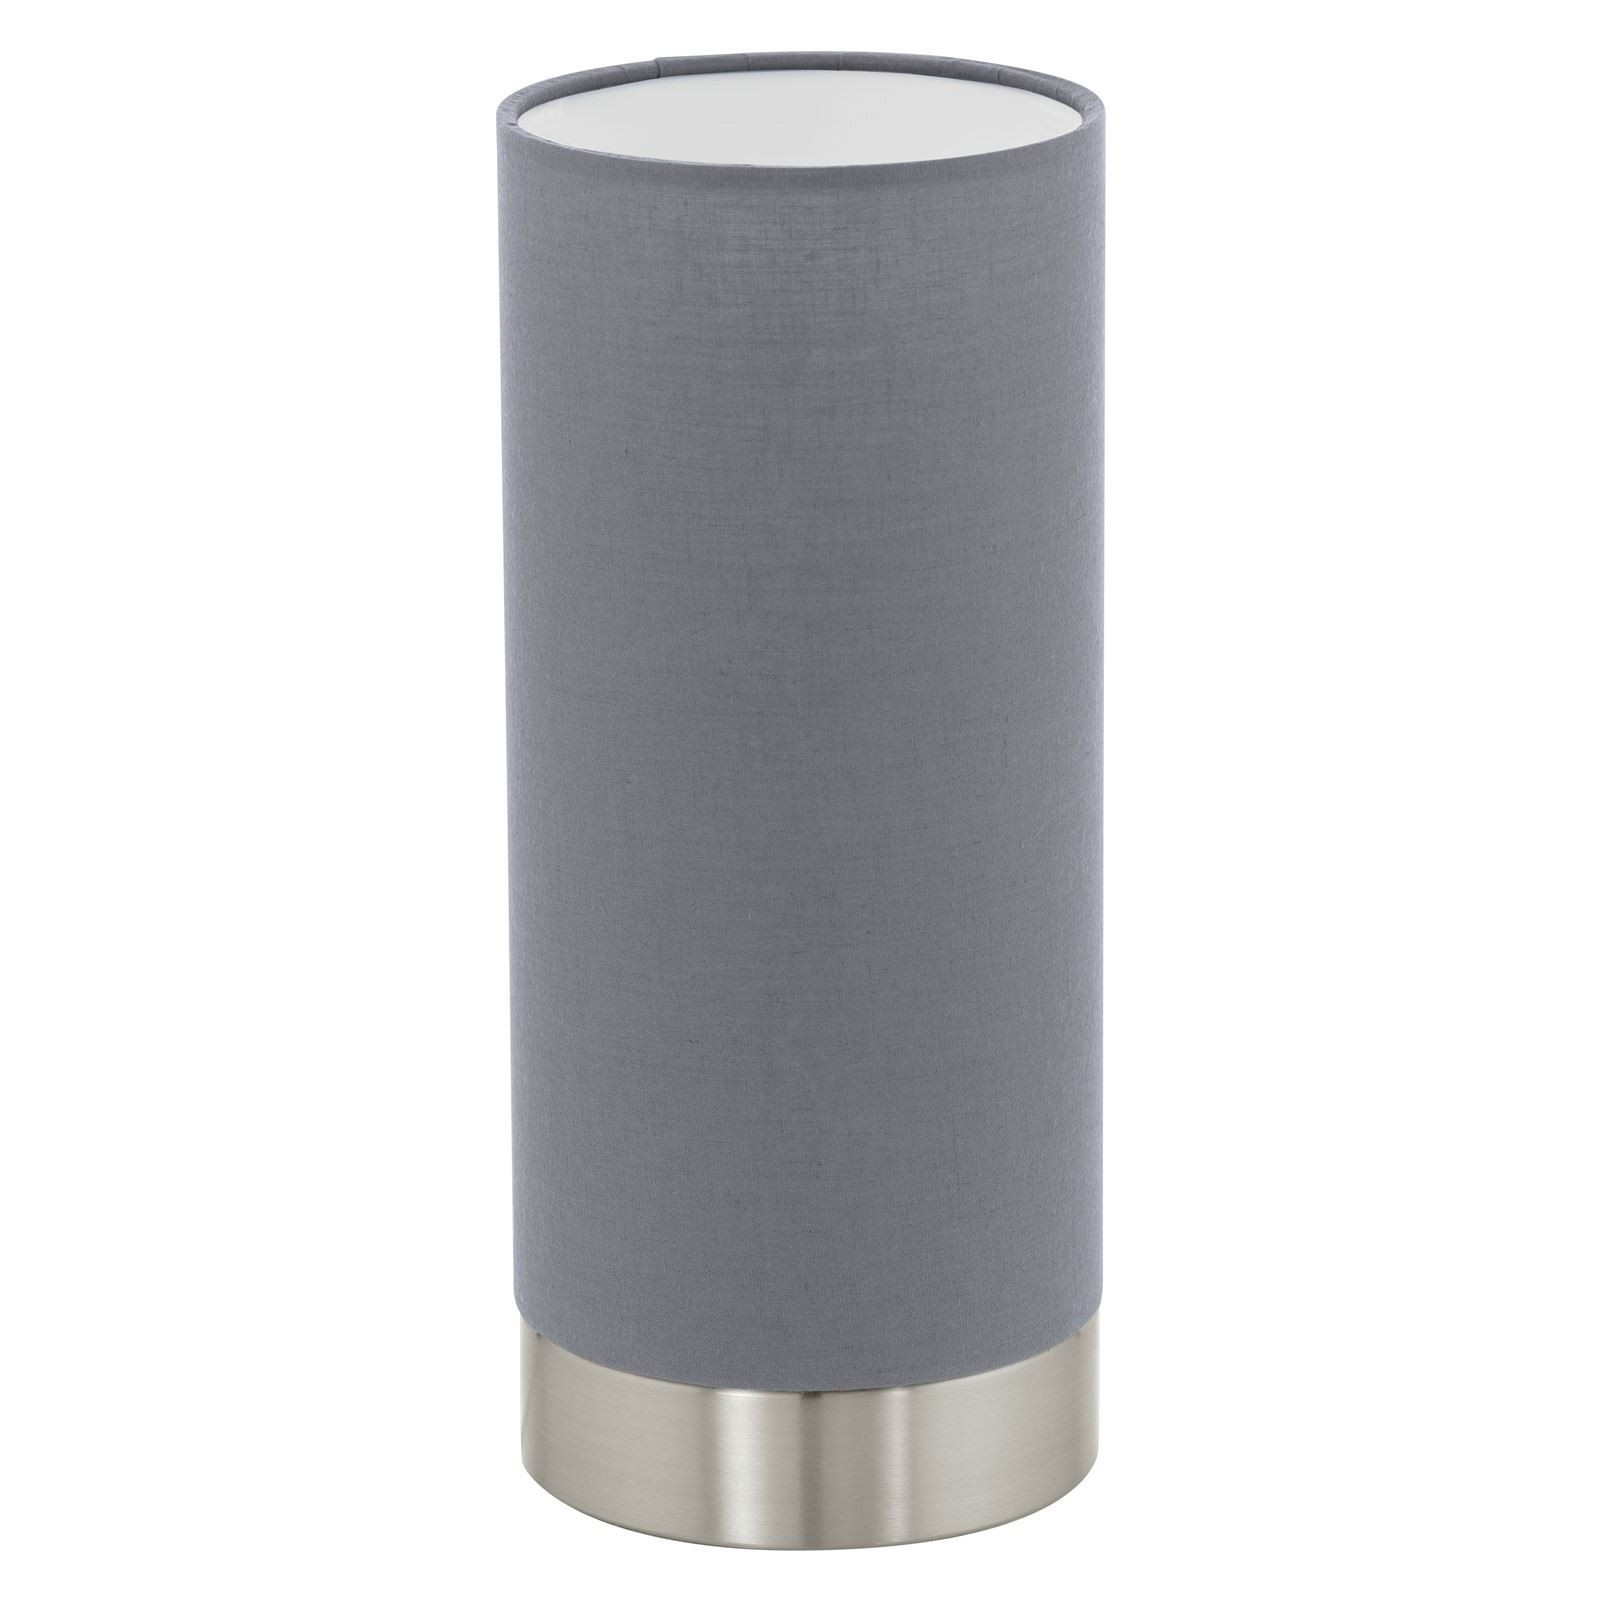 Pasteri Satin Nickel Table Lamp With Grey Shade Touchdimmer Switch